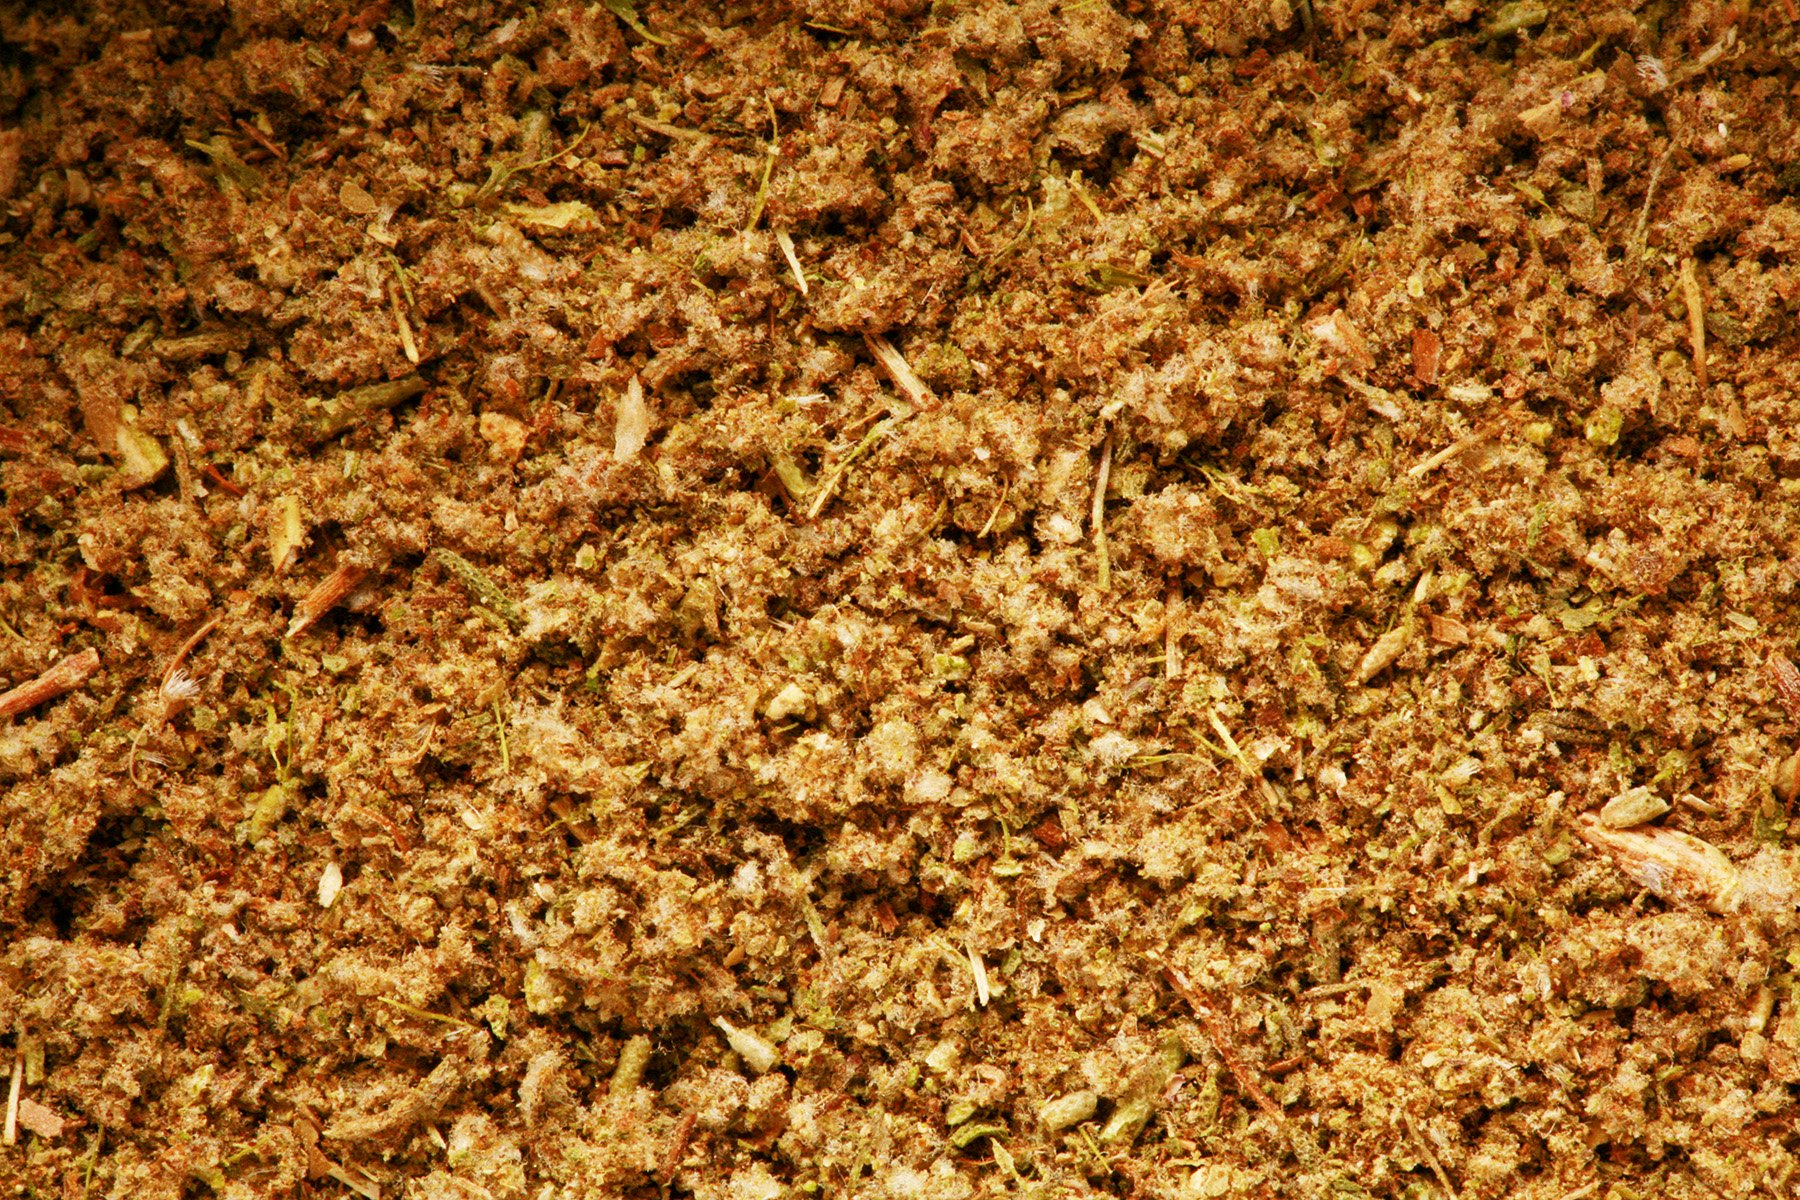 A close up view of AIP compliant poultry seasoning. A fluffy looking brownish green herb mix.